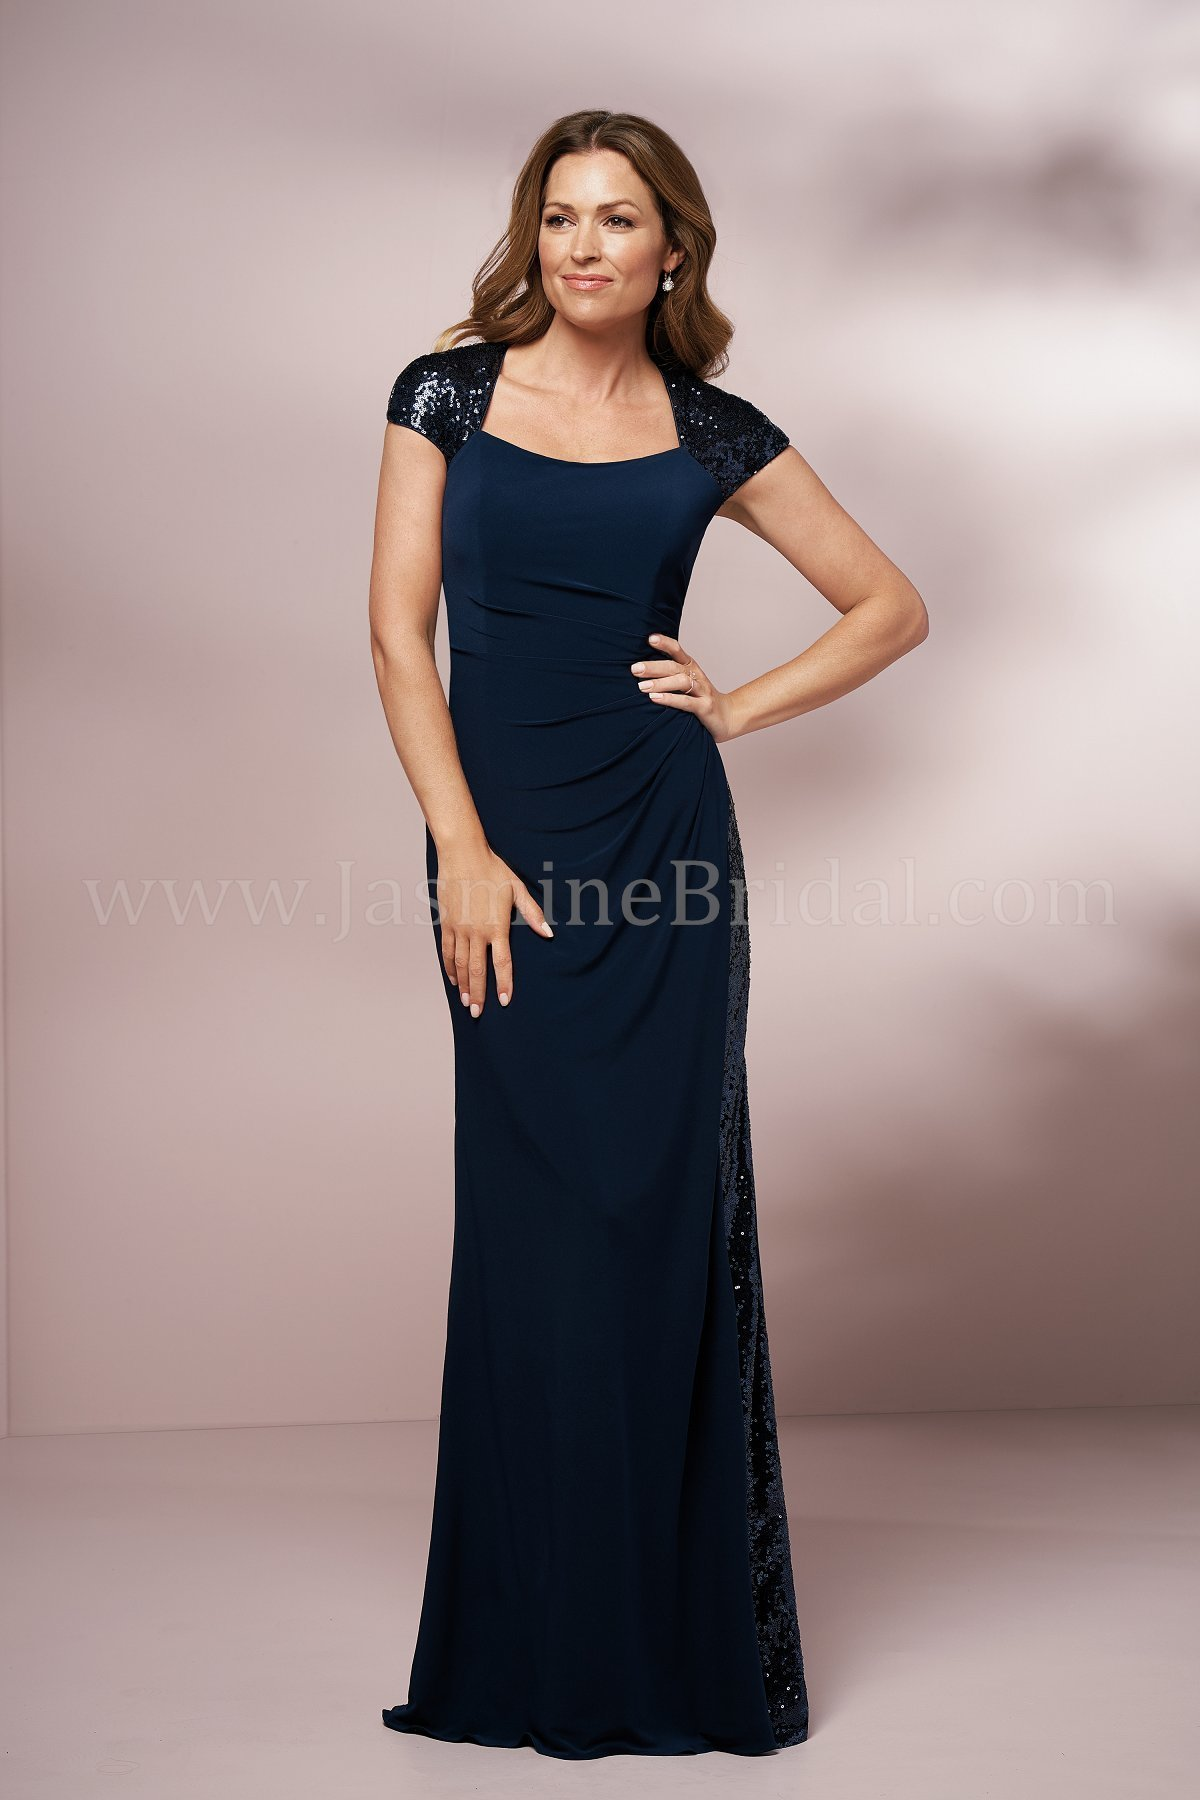 mother-of-the-bride-dresses-J205009-F